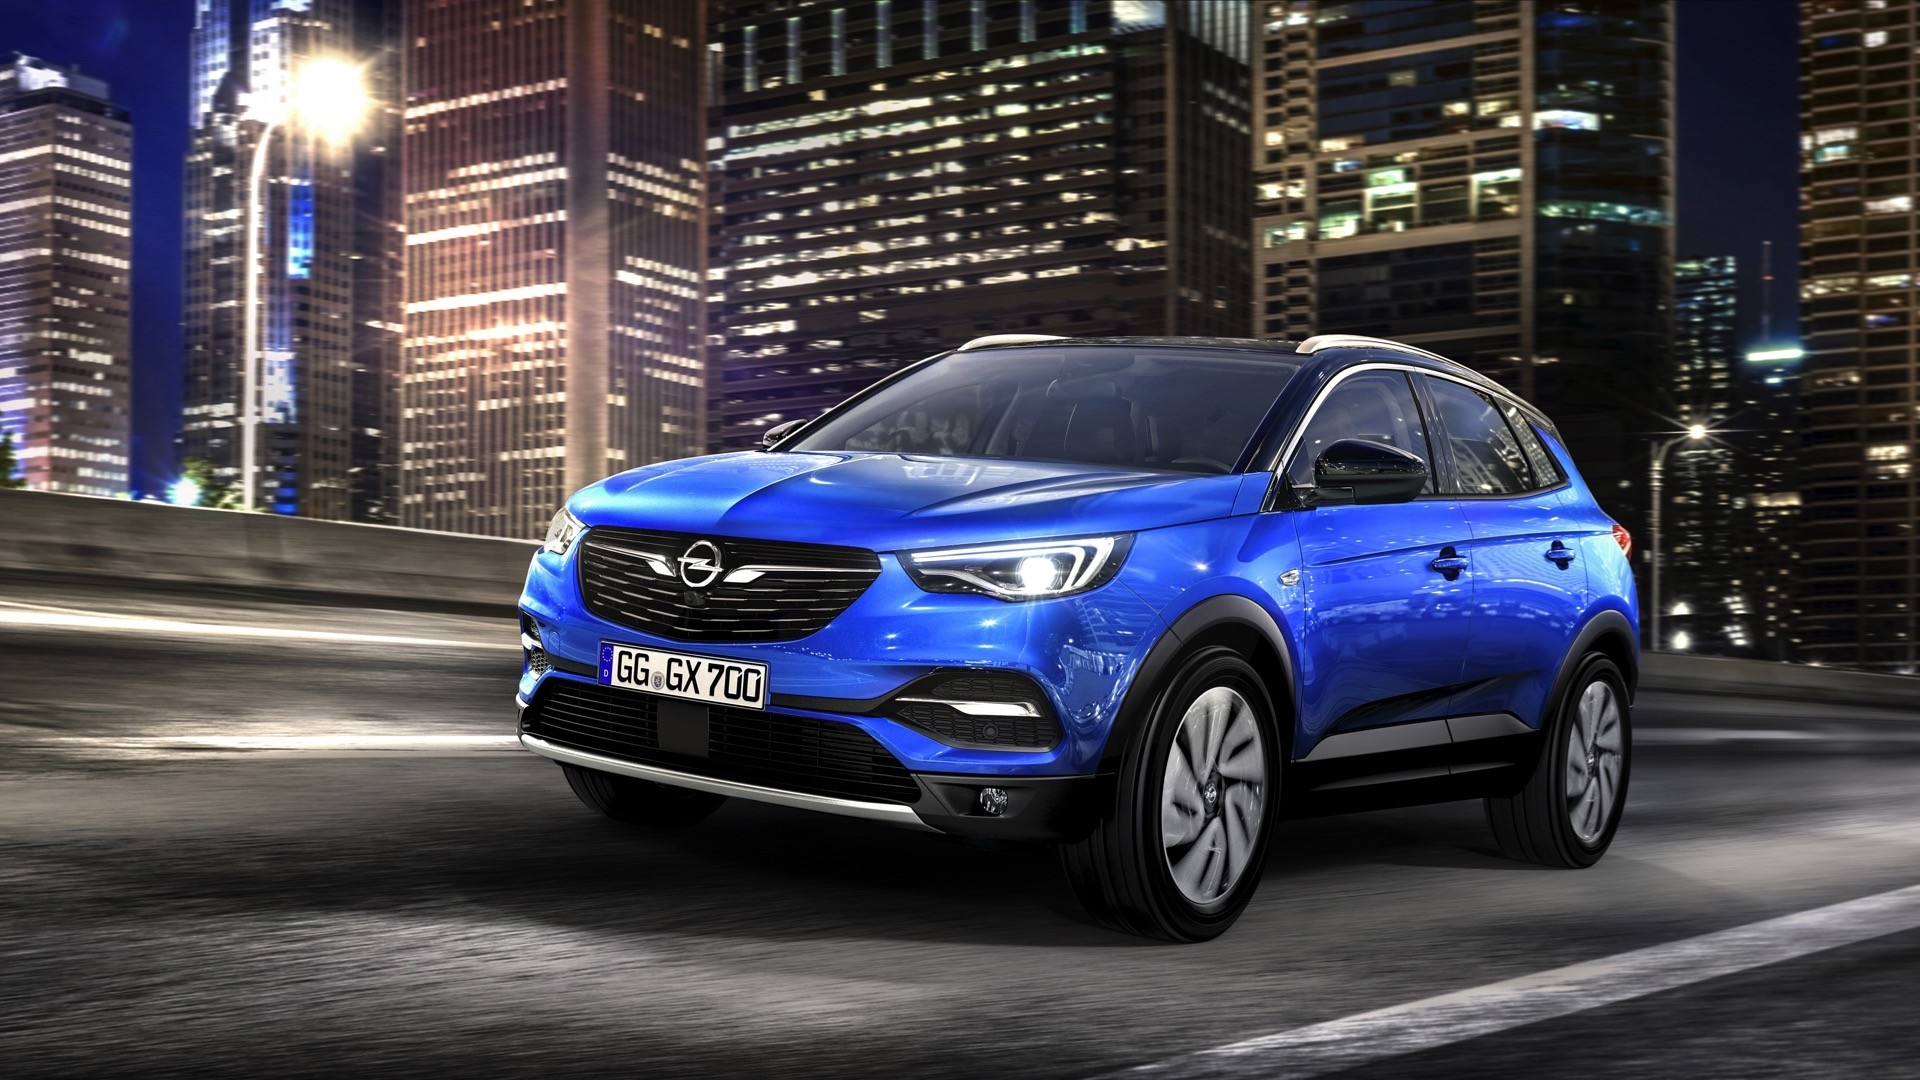 vauxhall grandland x priced higher than main rival nissan qashqai autoevolution. Black Bedroom Furniture Sets. Home Design Ideas